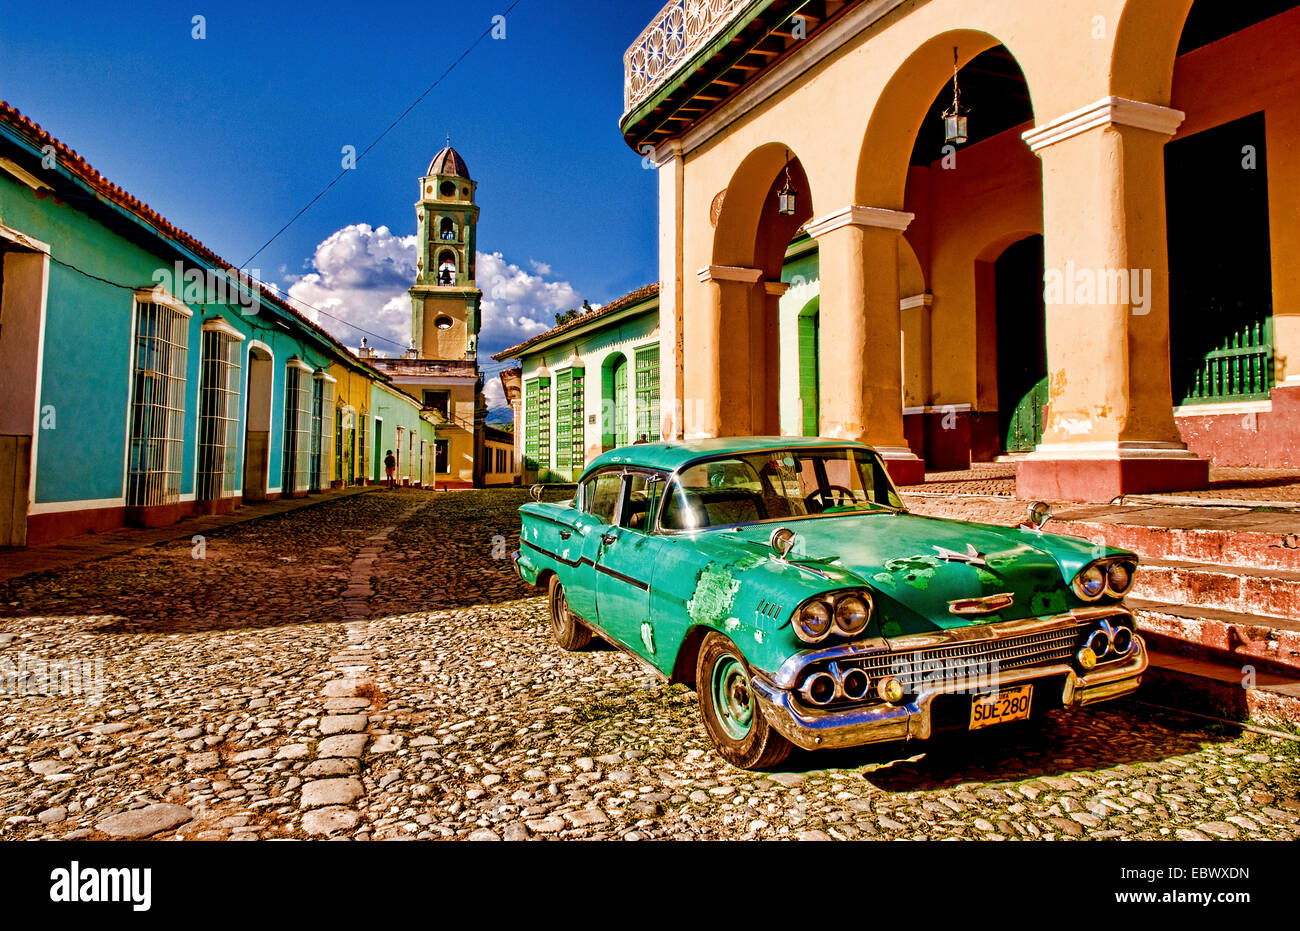 Old worn 1958 Classic Chevy on cobblestone street in center square of Trinidad, Cuba, Trinidad - Stock Image